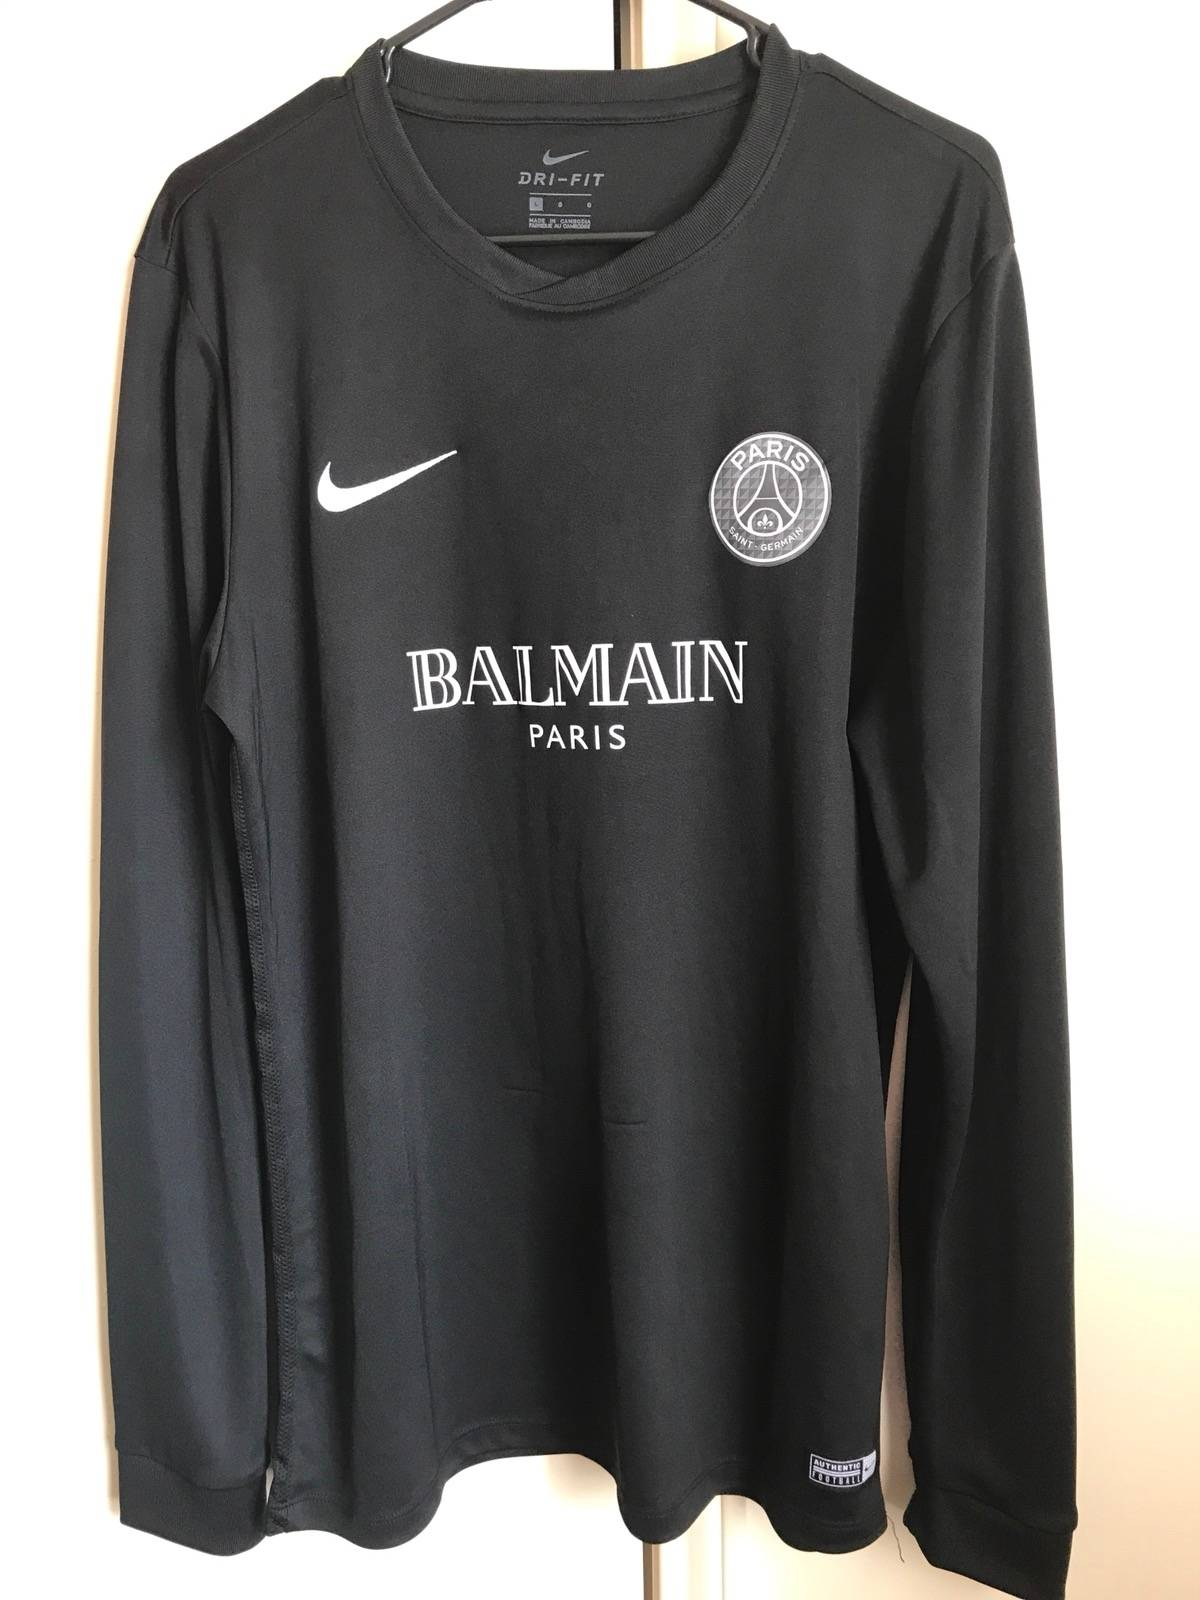 buy popular 39f3f 5bf8e Heren: kleding PSG x Balmain Limited Edition Custom Nike ...